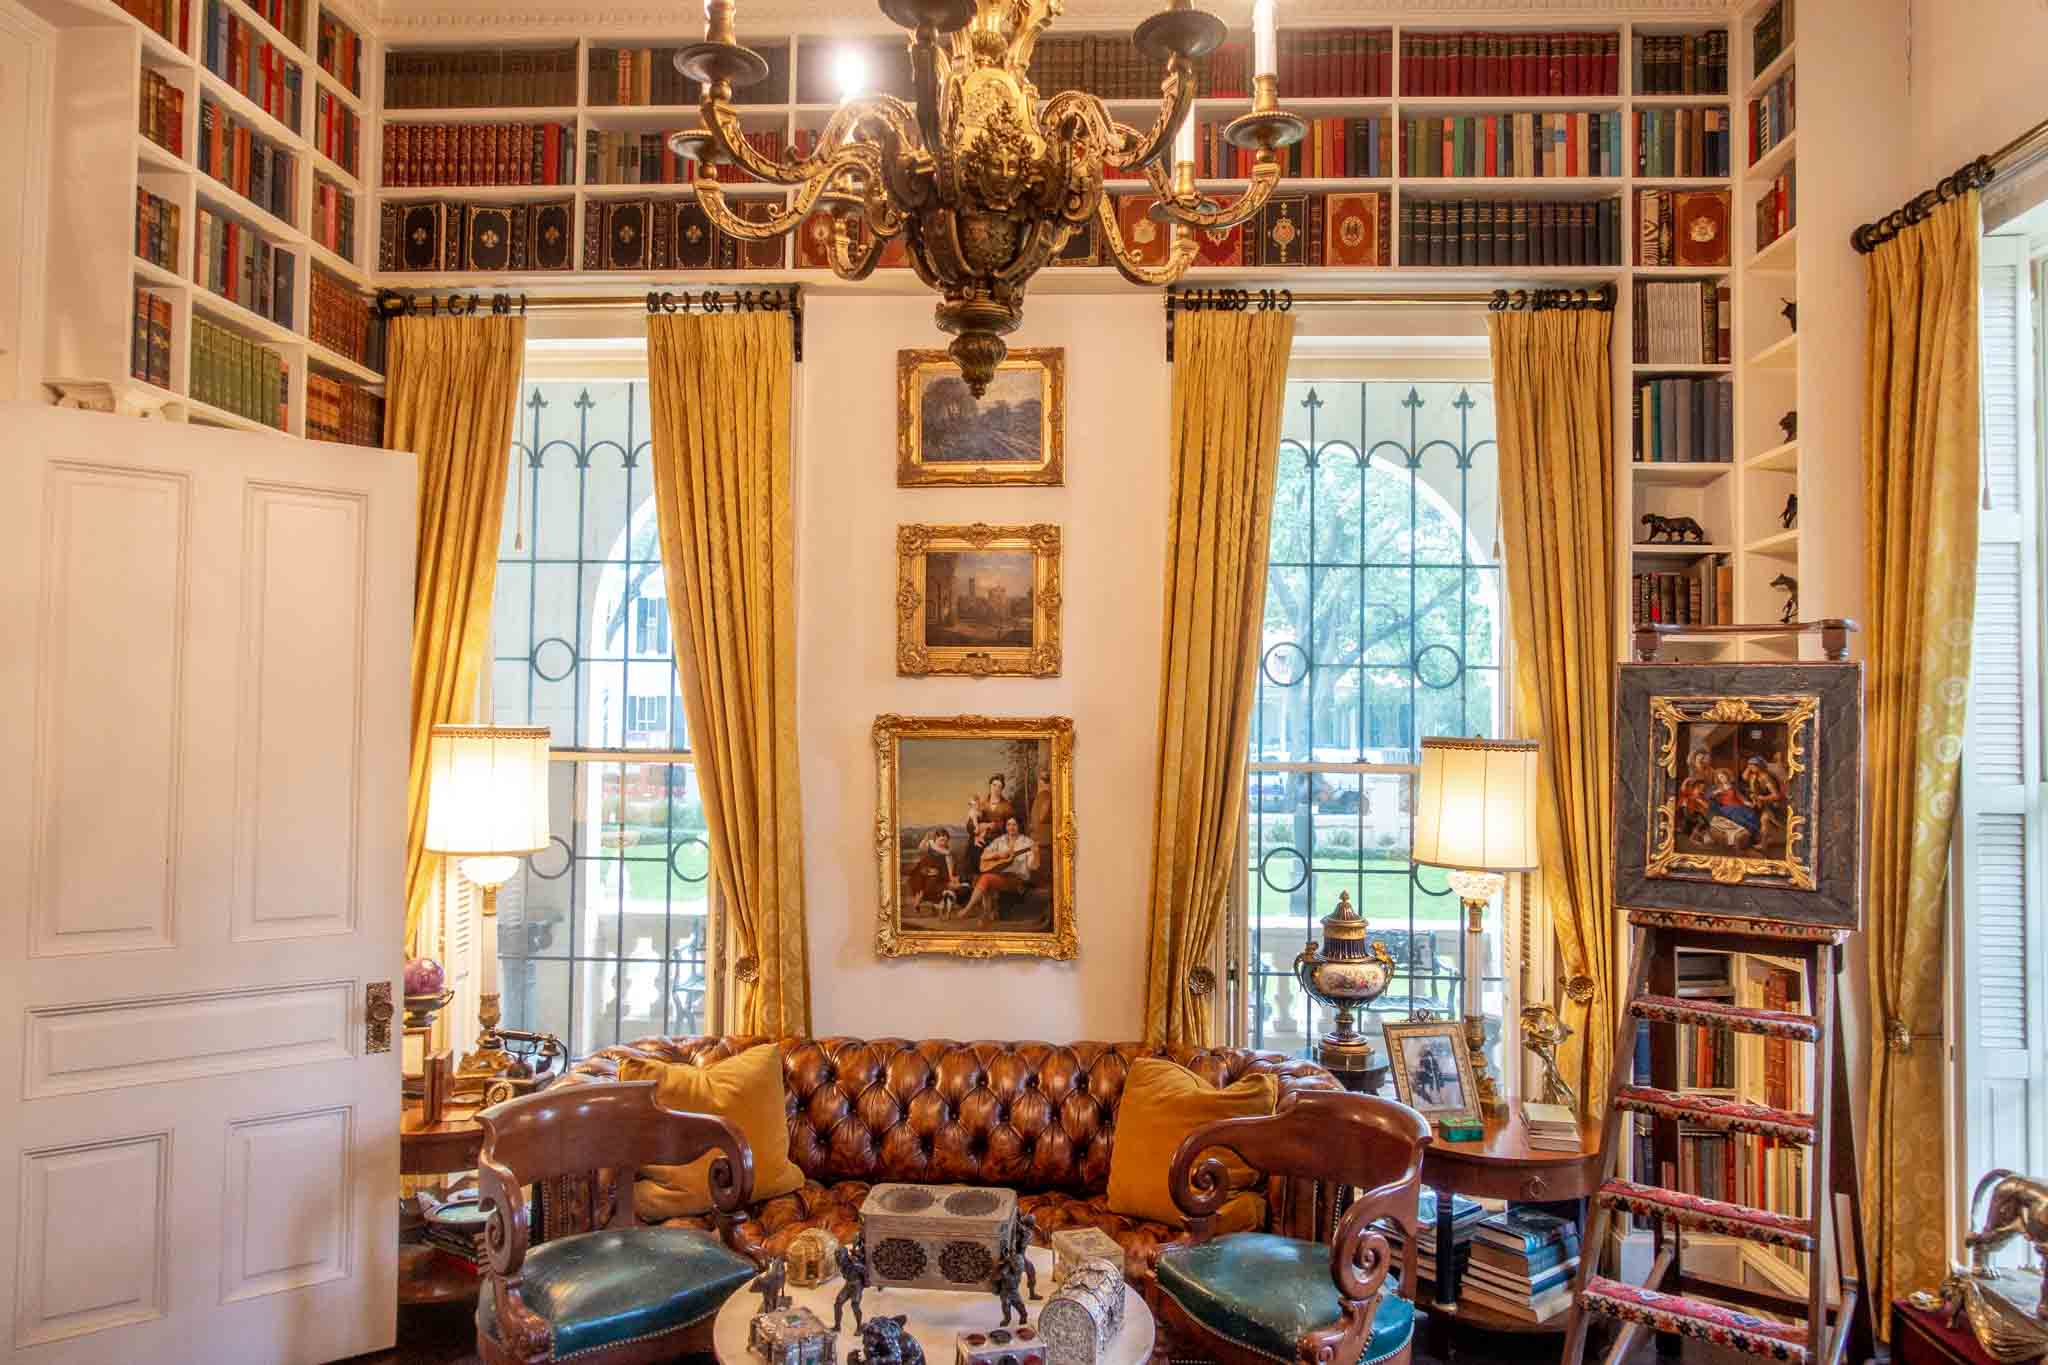 Room filled with books and paintings with yellow curtains and a sofa